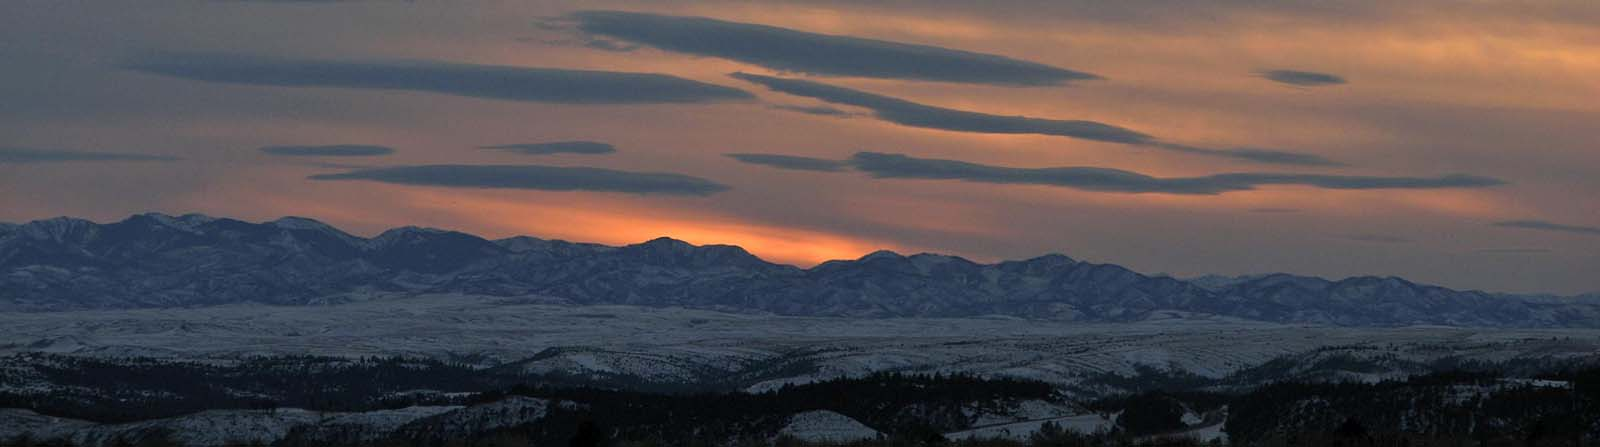 The Absaroka Range between Cody and Yellowstone's East Gate. Photo by Mack Frost.